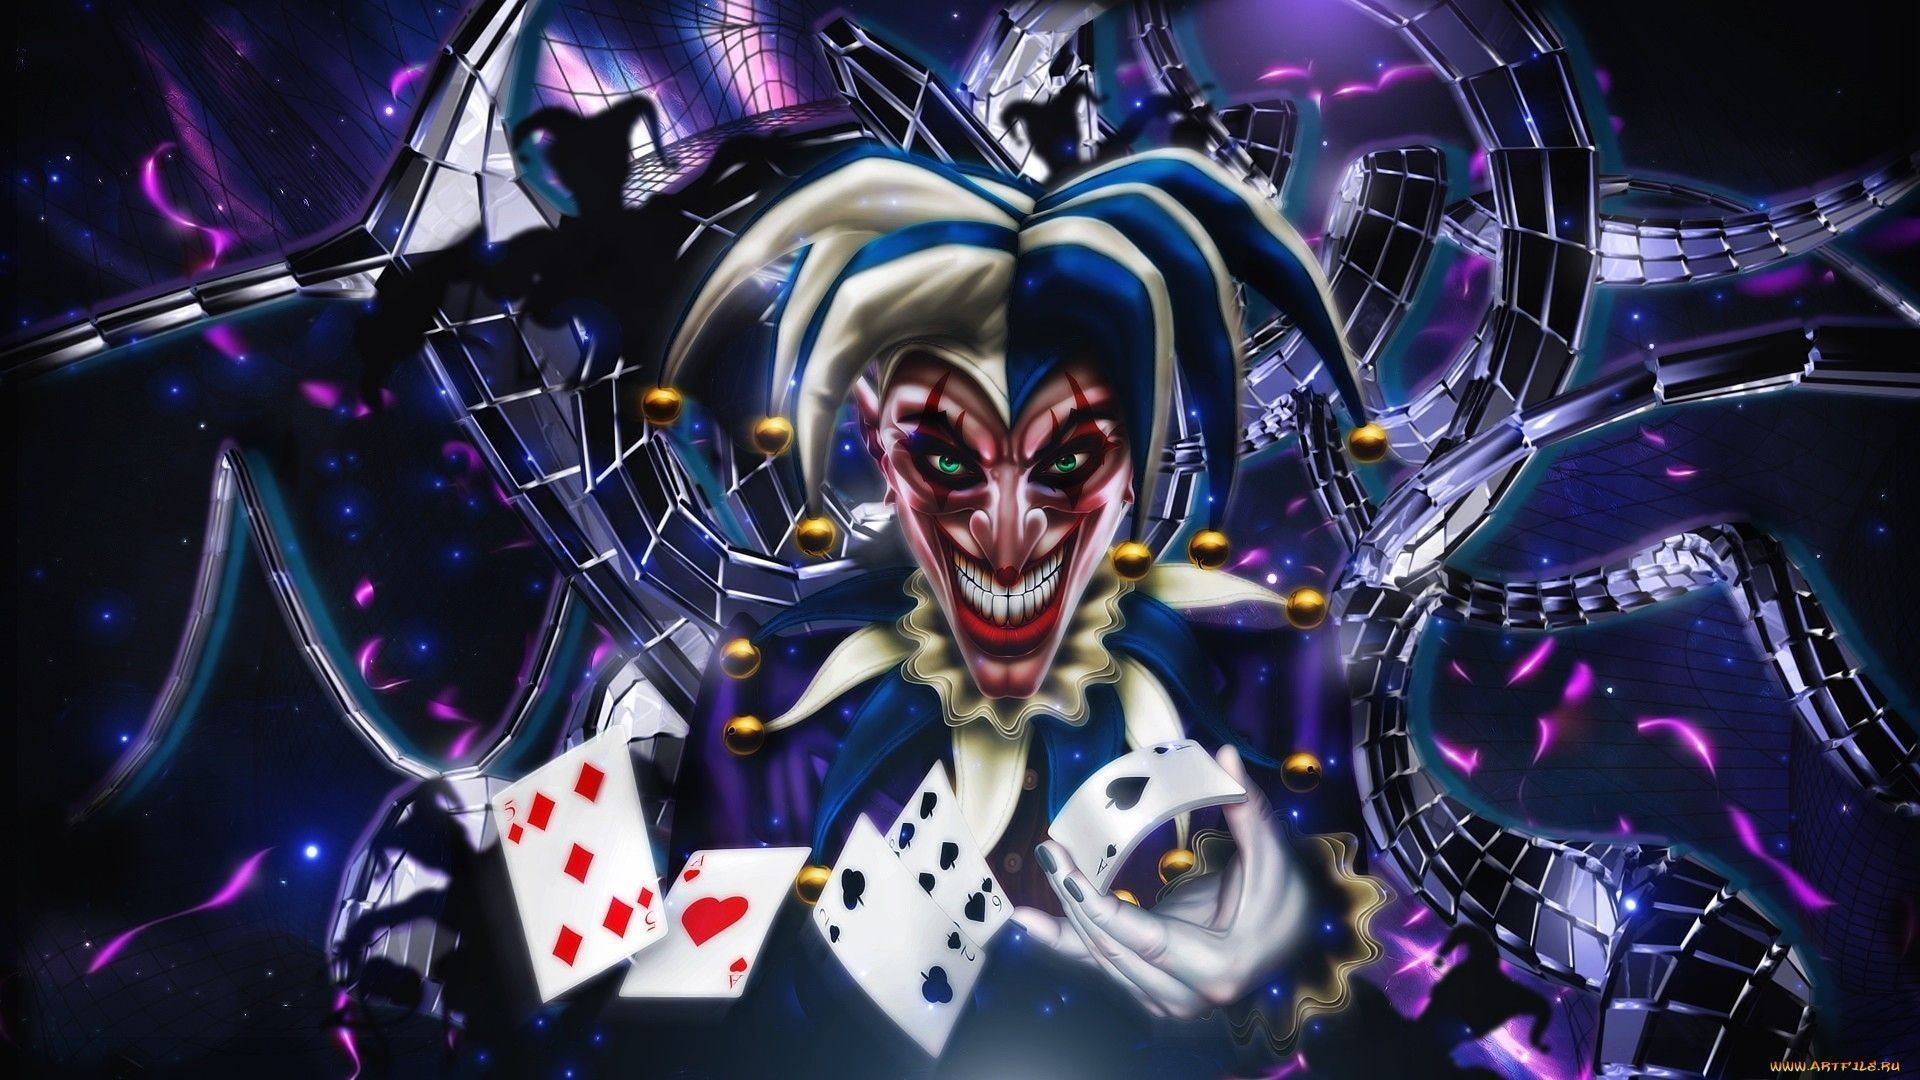 Res: 1920x1080, Scary Clown Wallpapers HD Download Scary Clown Wallpapers HD .